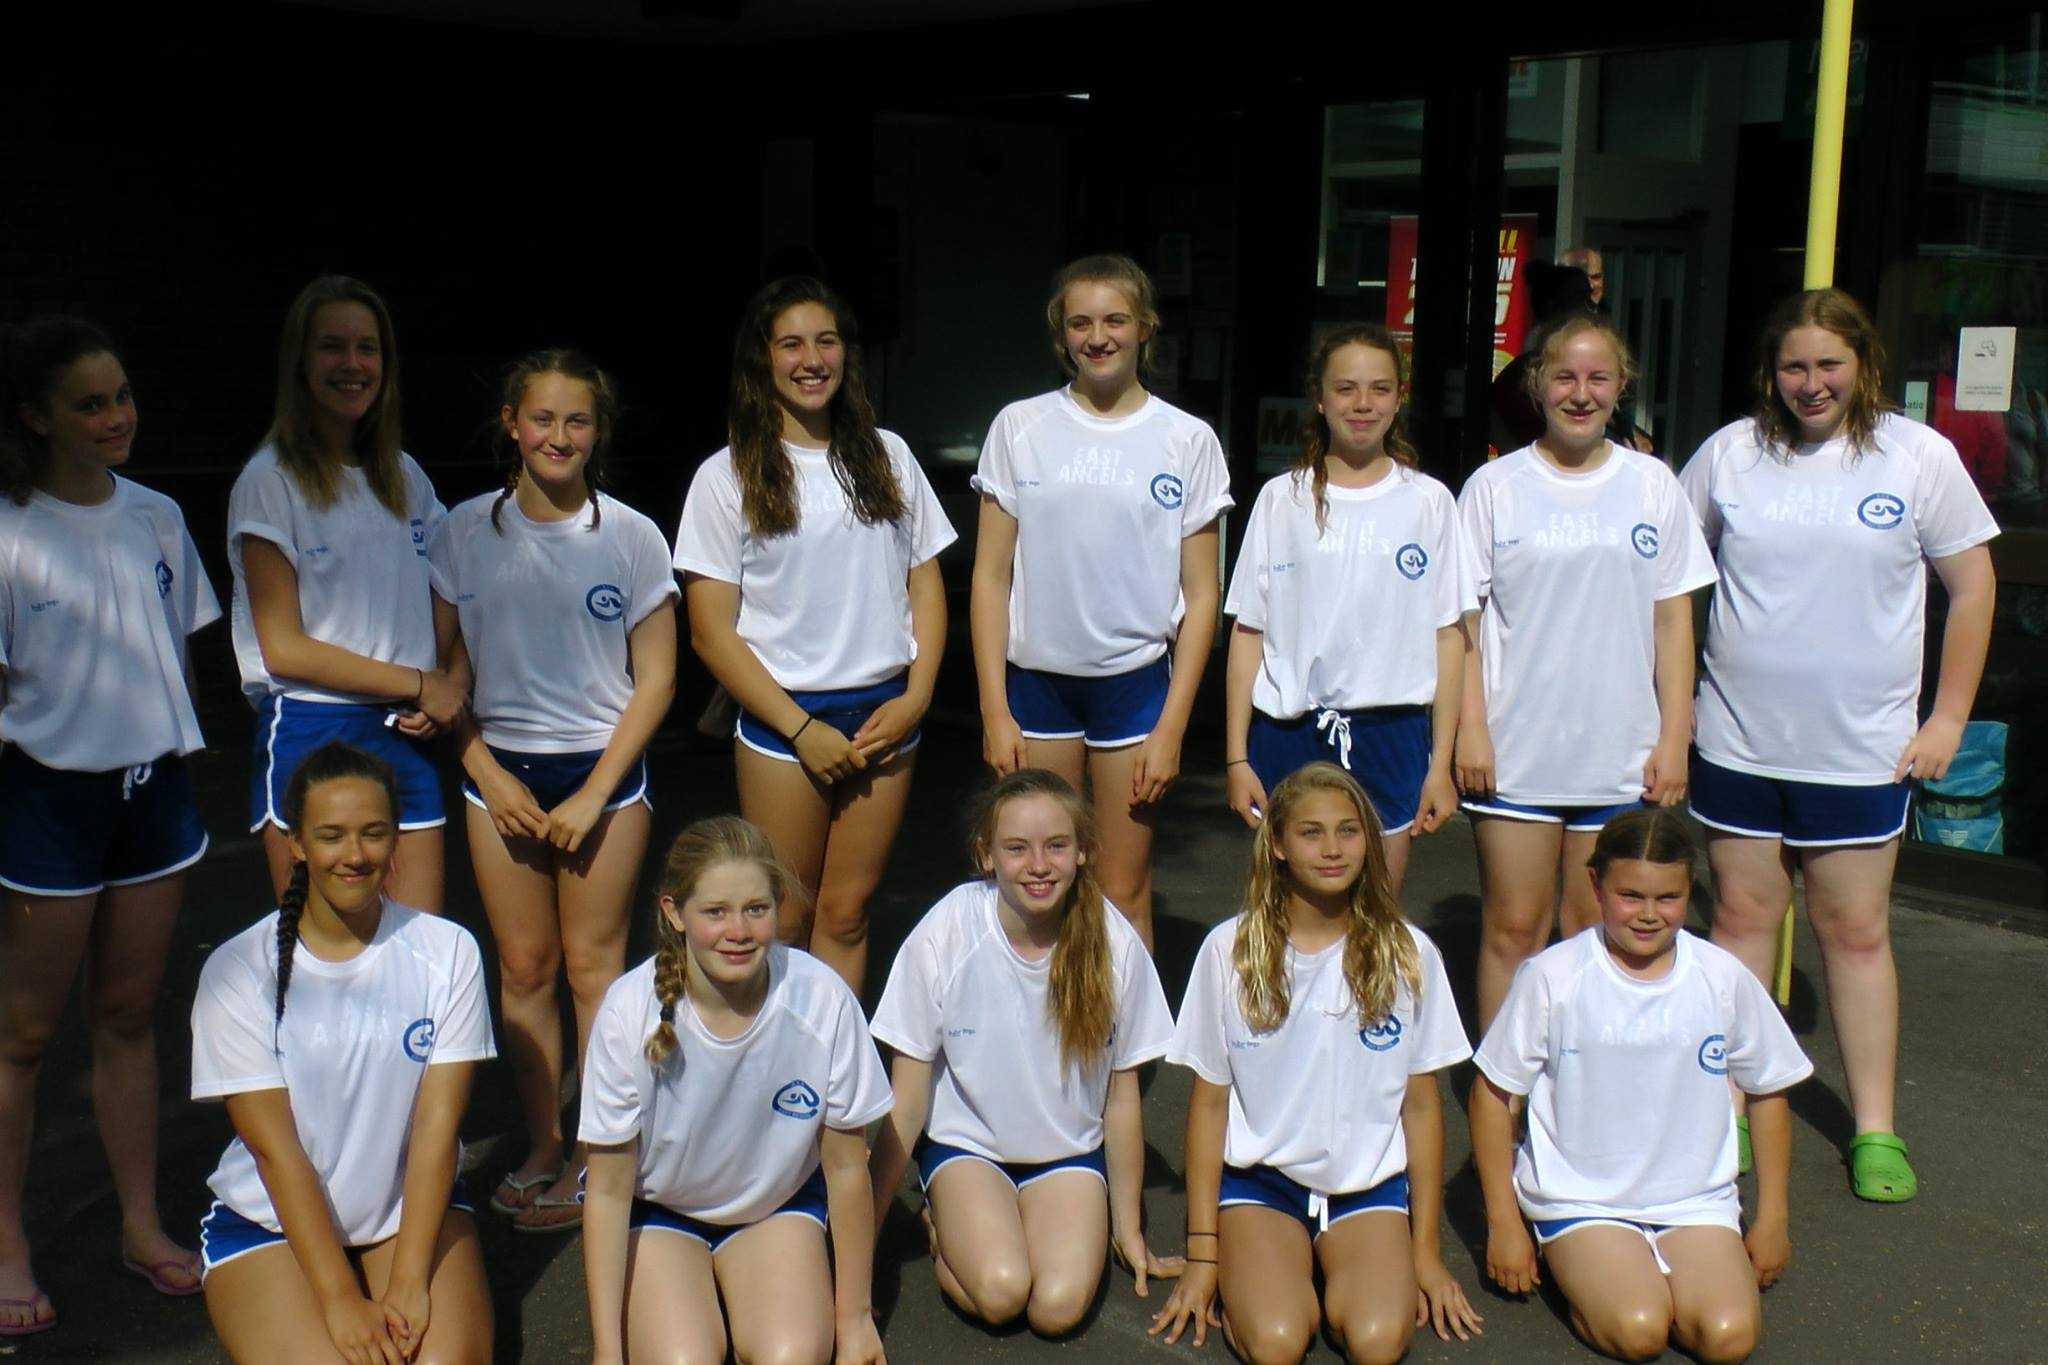 Ipswich_Water_Polo_Girls_Champions1.jpg